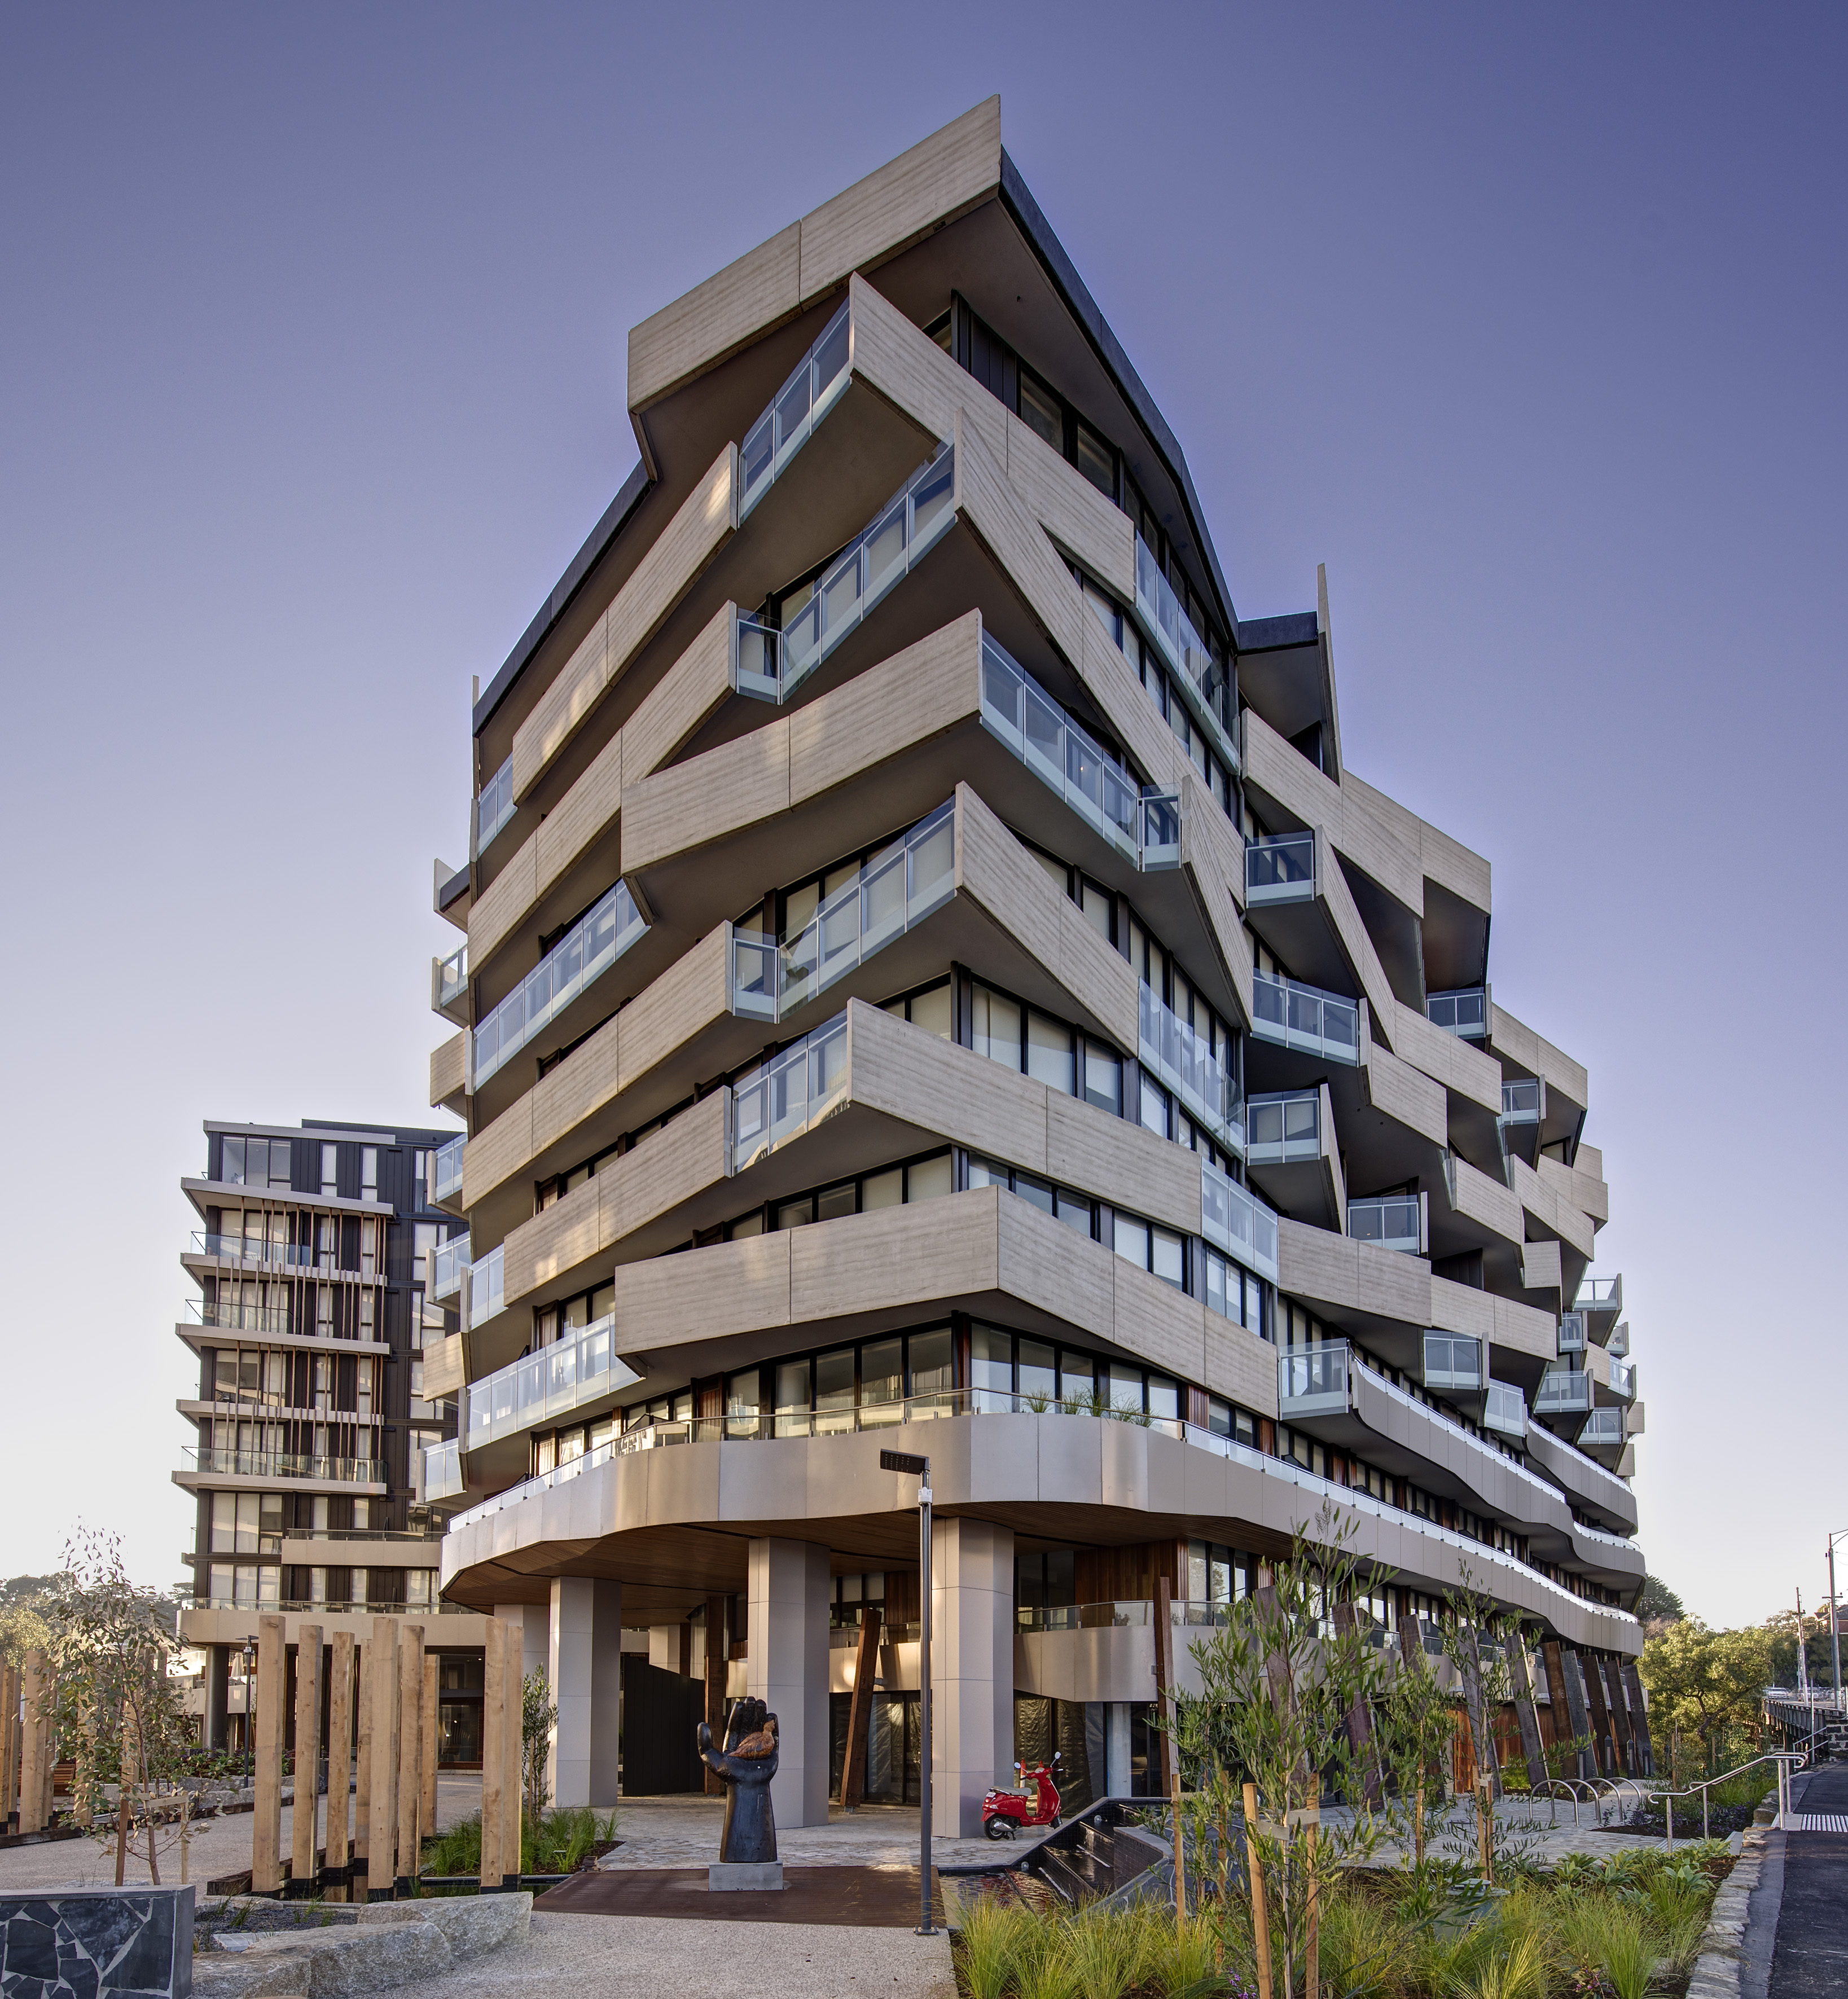 Abbotsford-Rothelowman-The Local Project-Australian Architecture & Design-Image 51